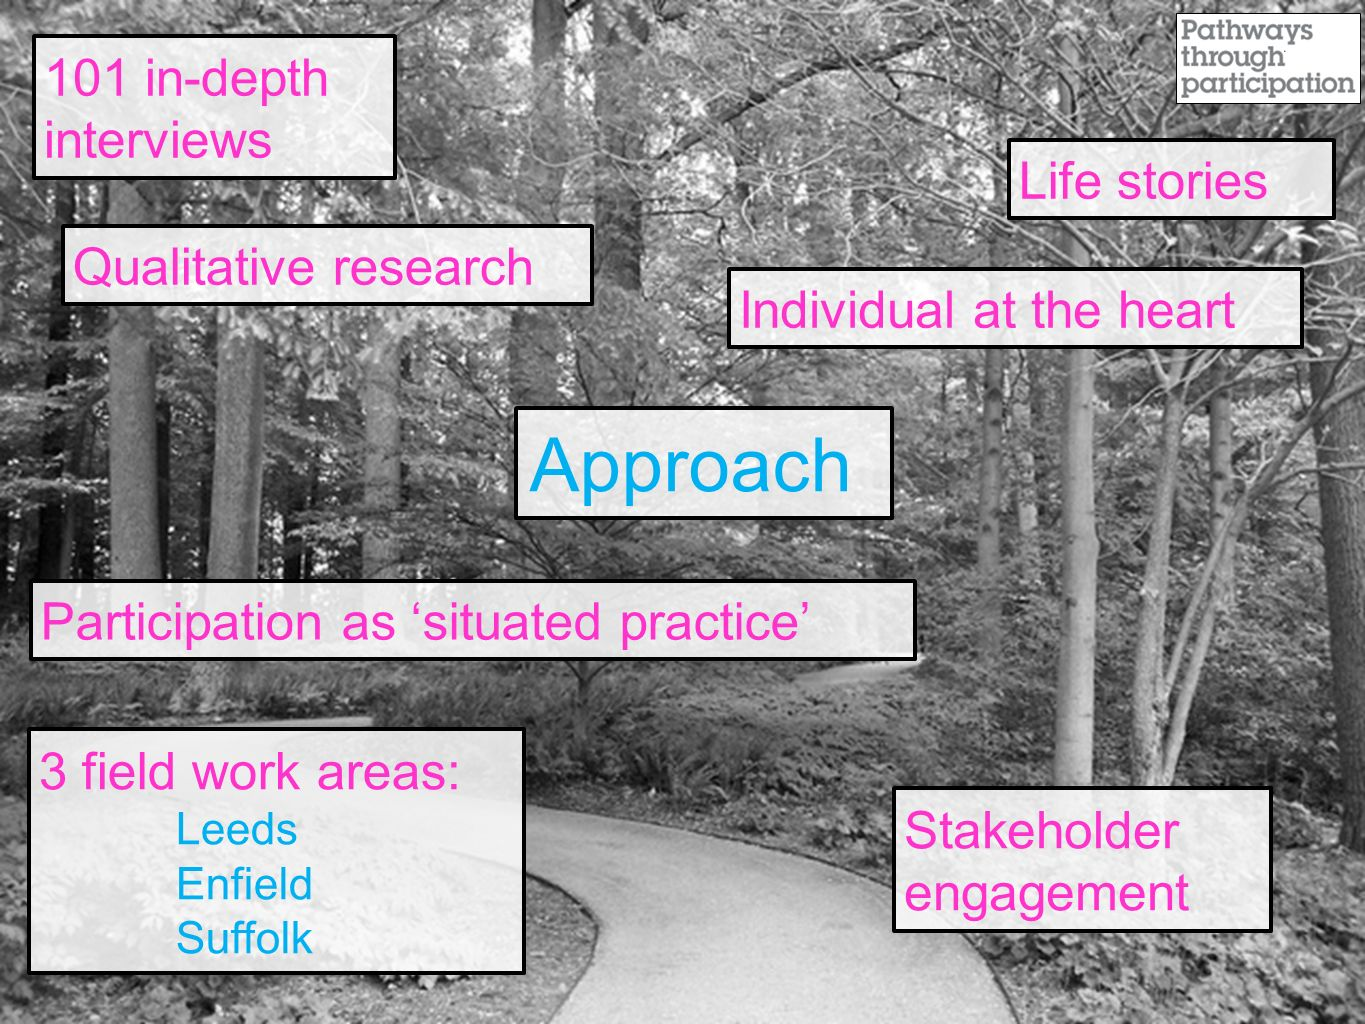 Approach 3 field work areas: Leeds Enfield Suffolk Individual at the heart Qualitative research 101 in-depth interviews Participation as 'situated practice' Stakeholder engagement Life stories